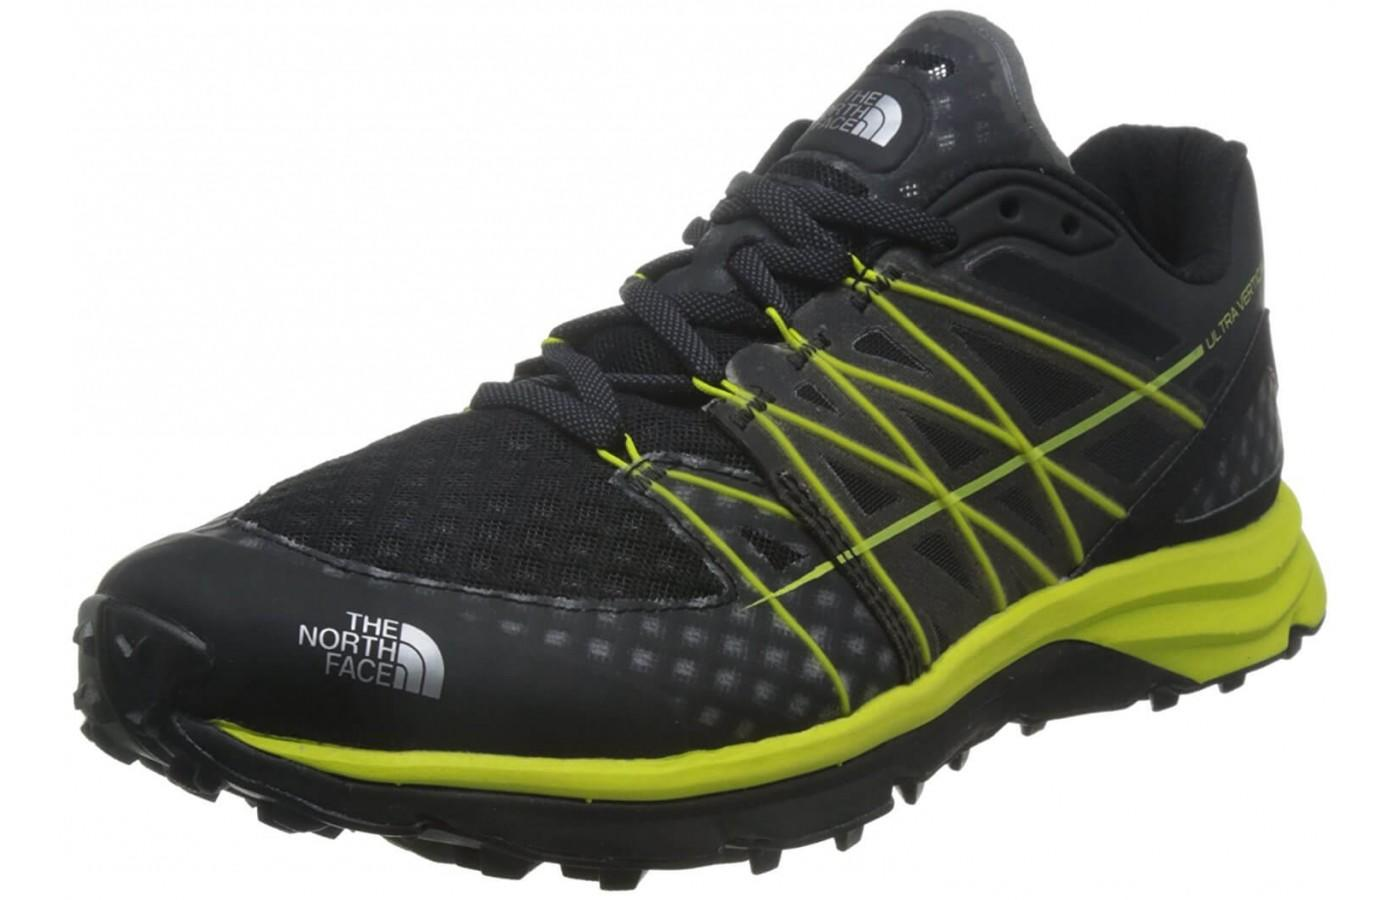 The North Face Ultra Vertical shown from the front/side